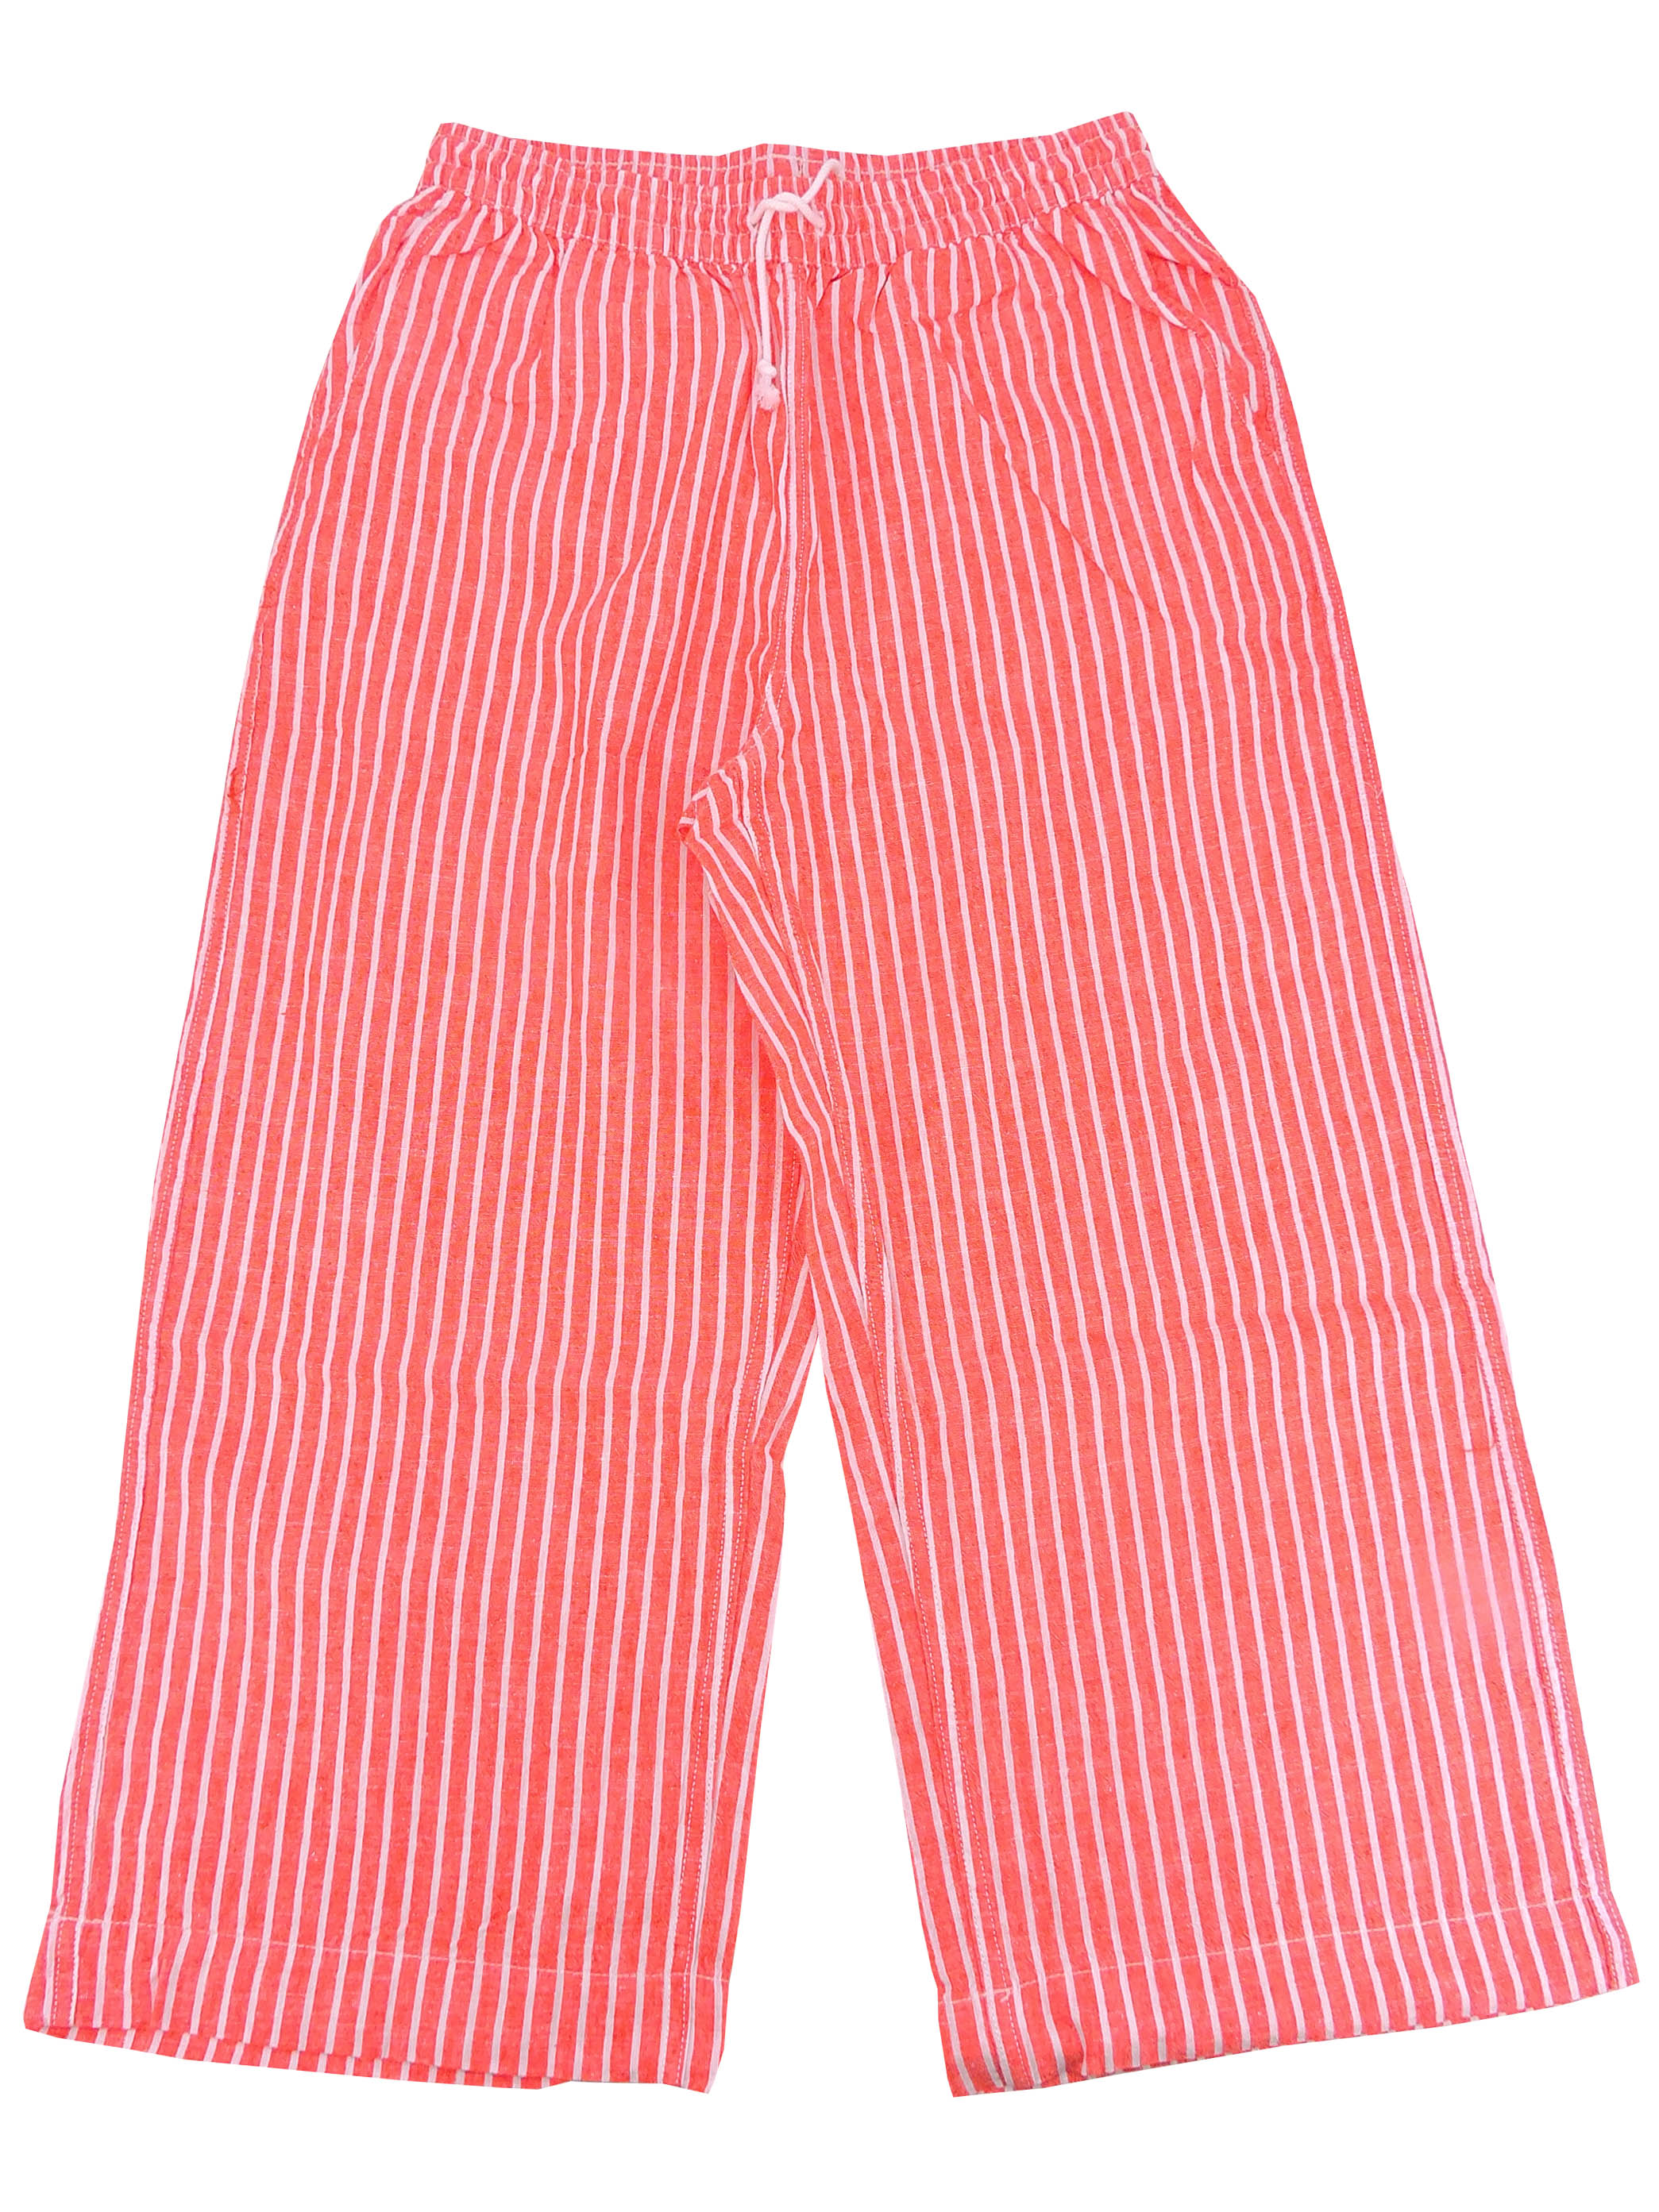 Beach Lunch Lounge Women's Guava Striped Tapered  Leg Pants, S